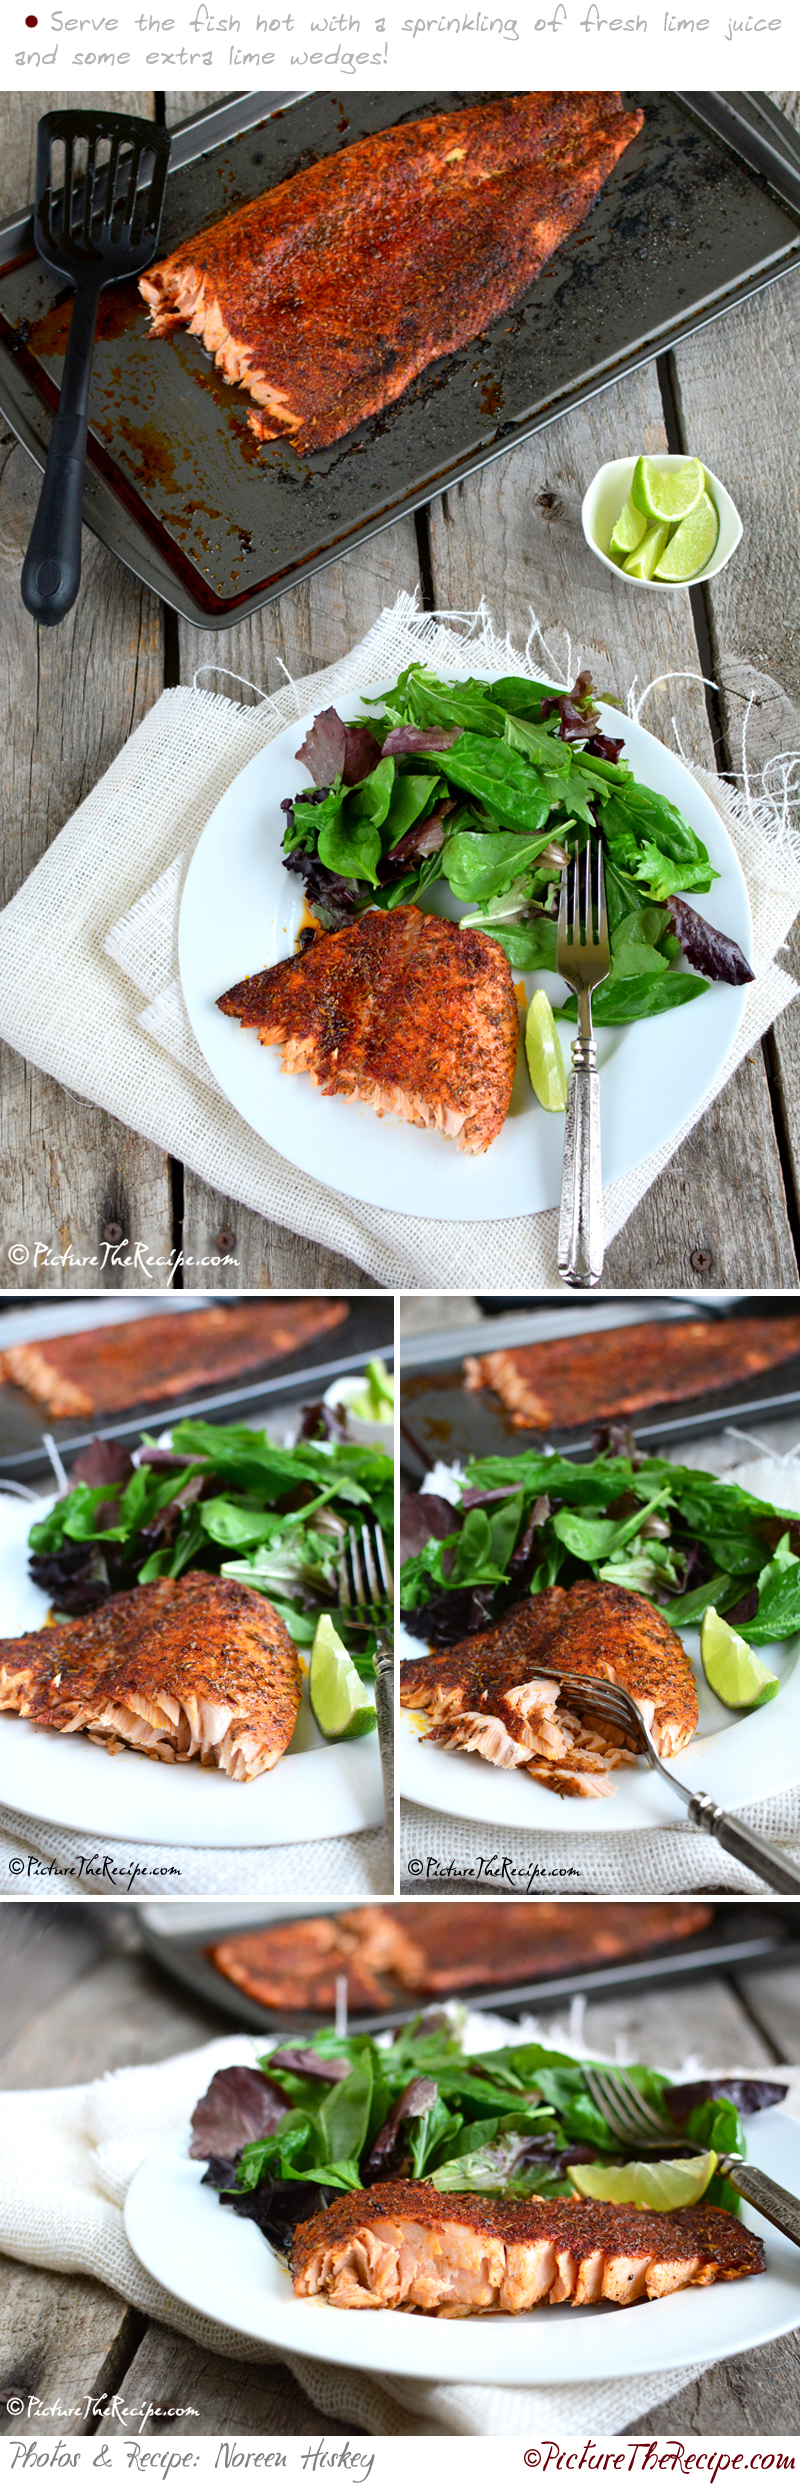 Blackened Salmon Recipe - PictureTheRecipe.com